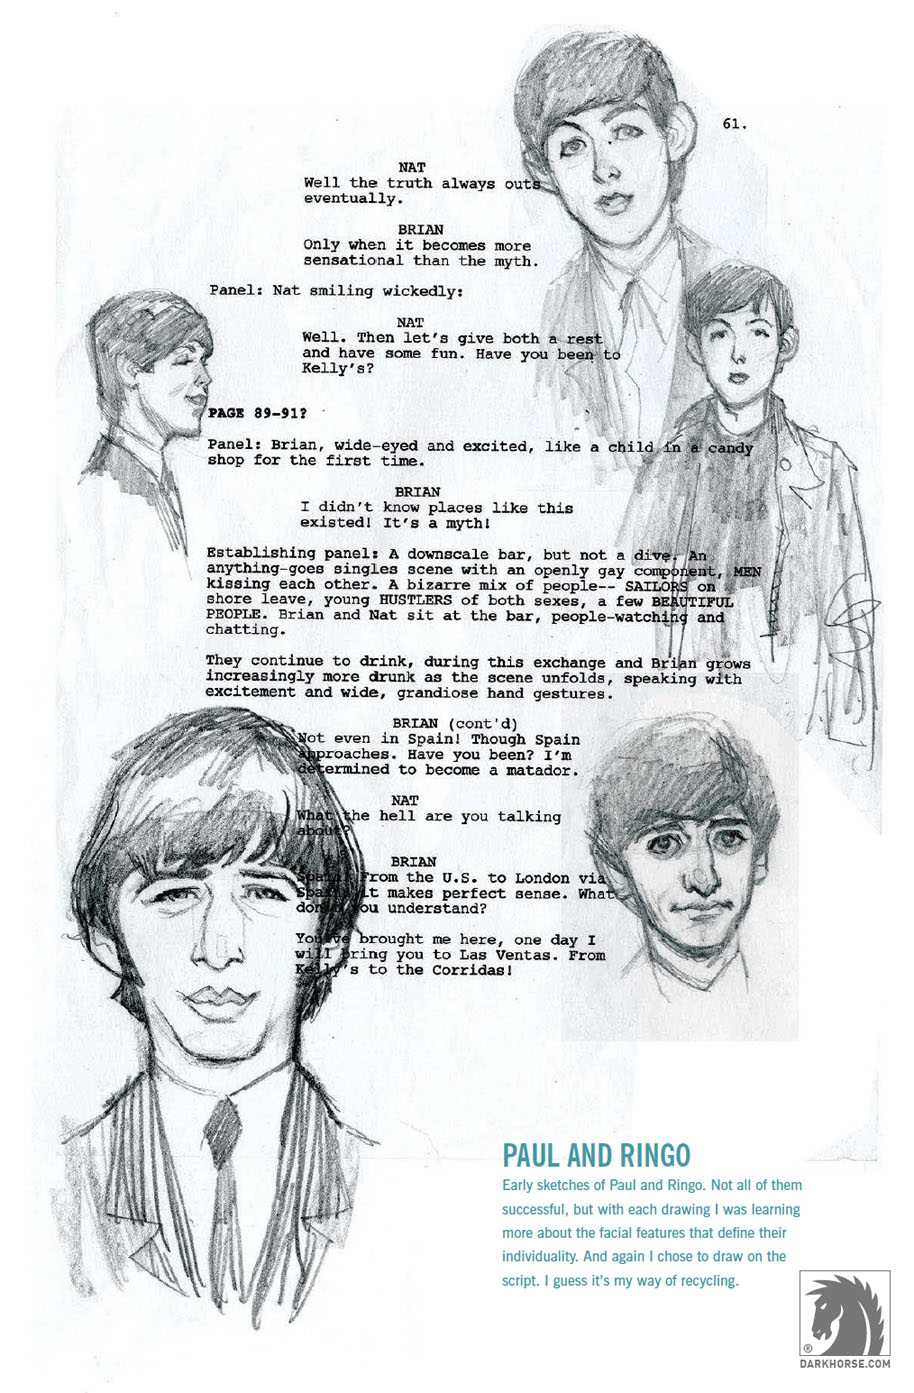 Paul & Ringo designs Robinson